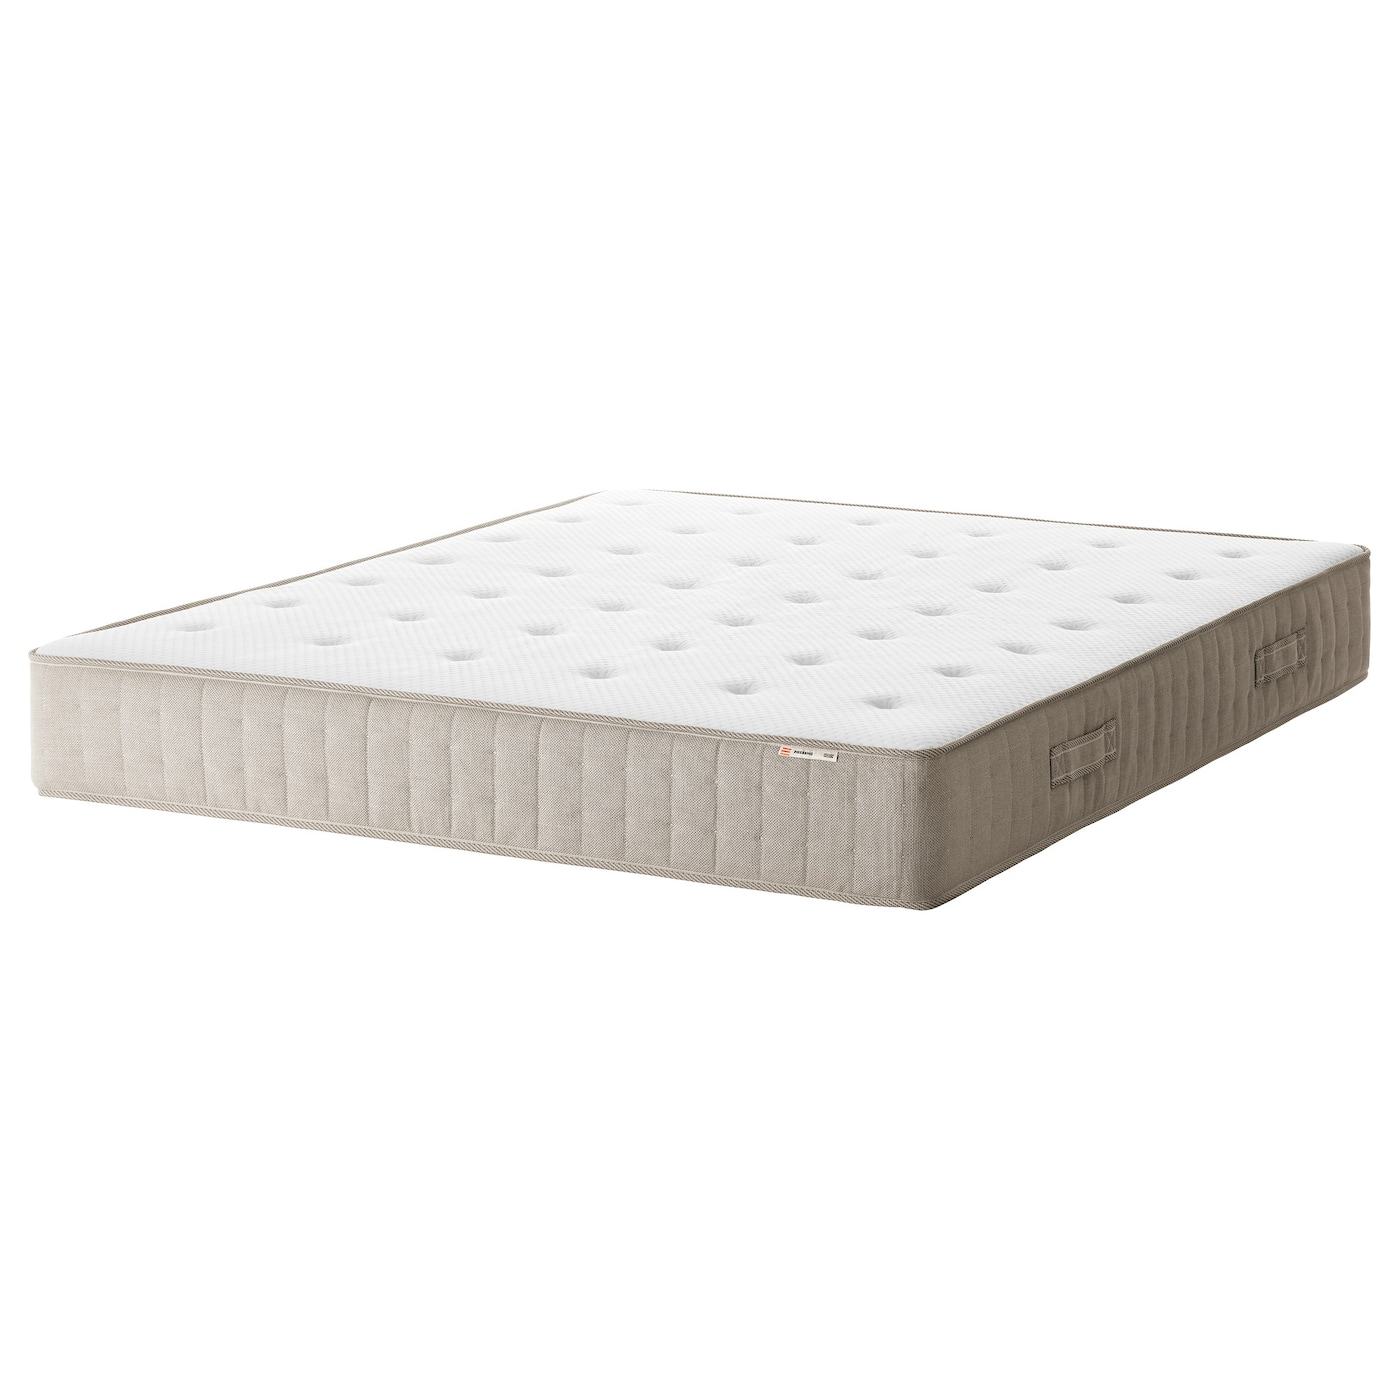 HESSENG Pocket sprung mattress Firm natural colour